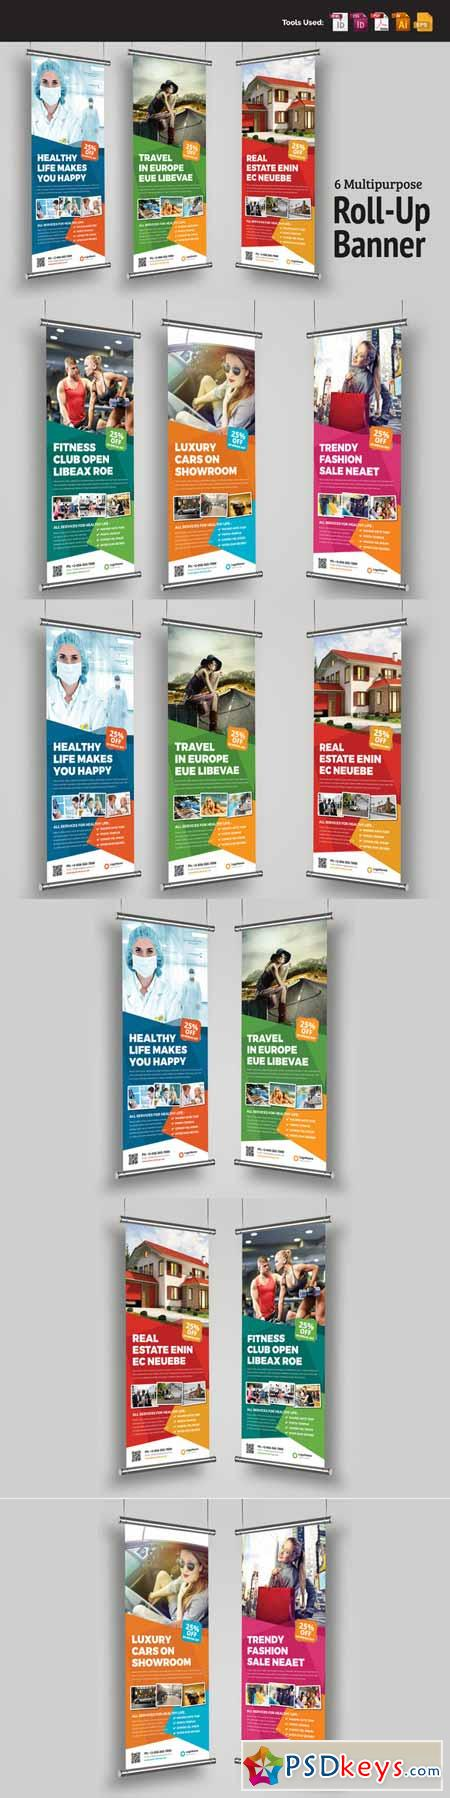 Multipurpose Roll-Up Banner Signage 482366